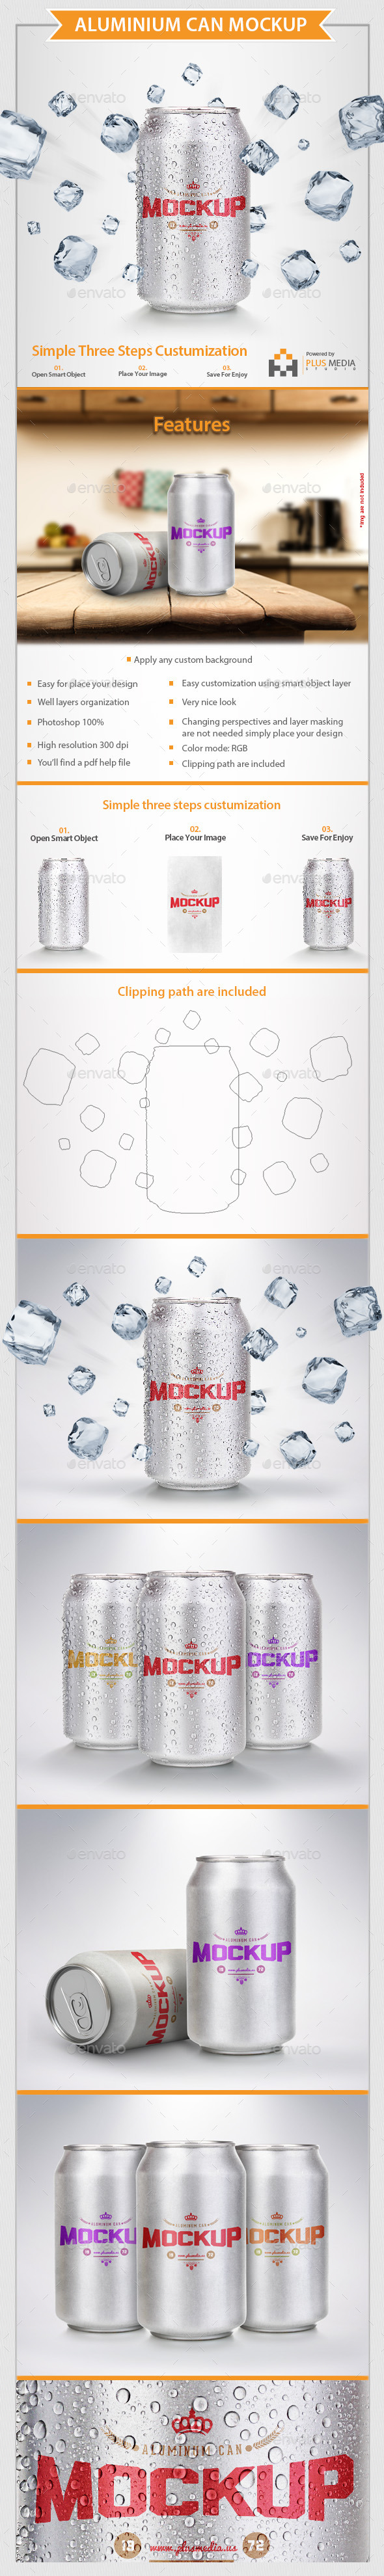 GraphicRiver Aluminium Can Mock-Up 10621267